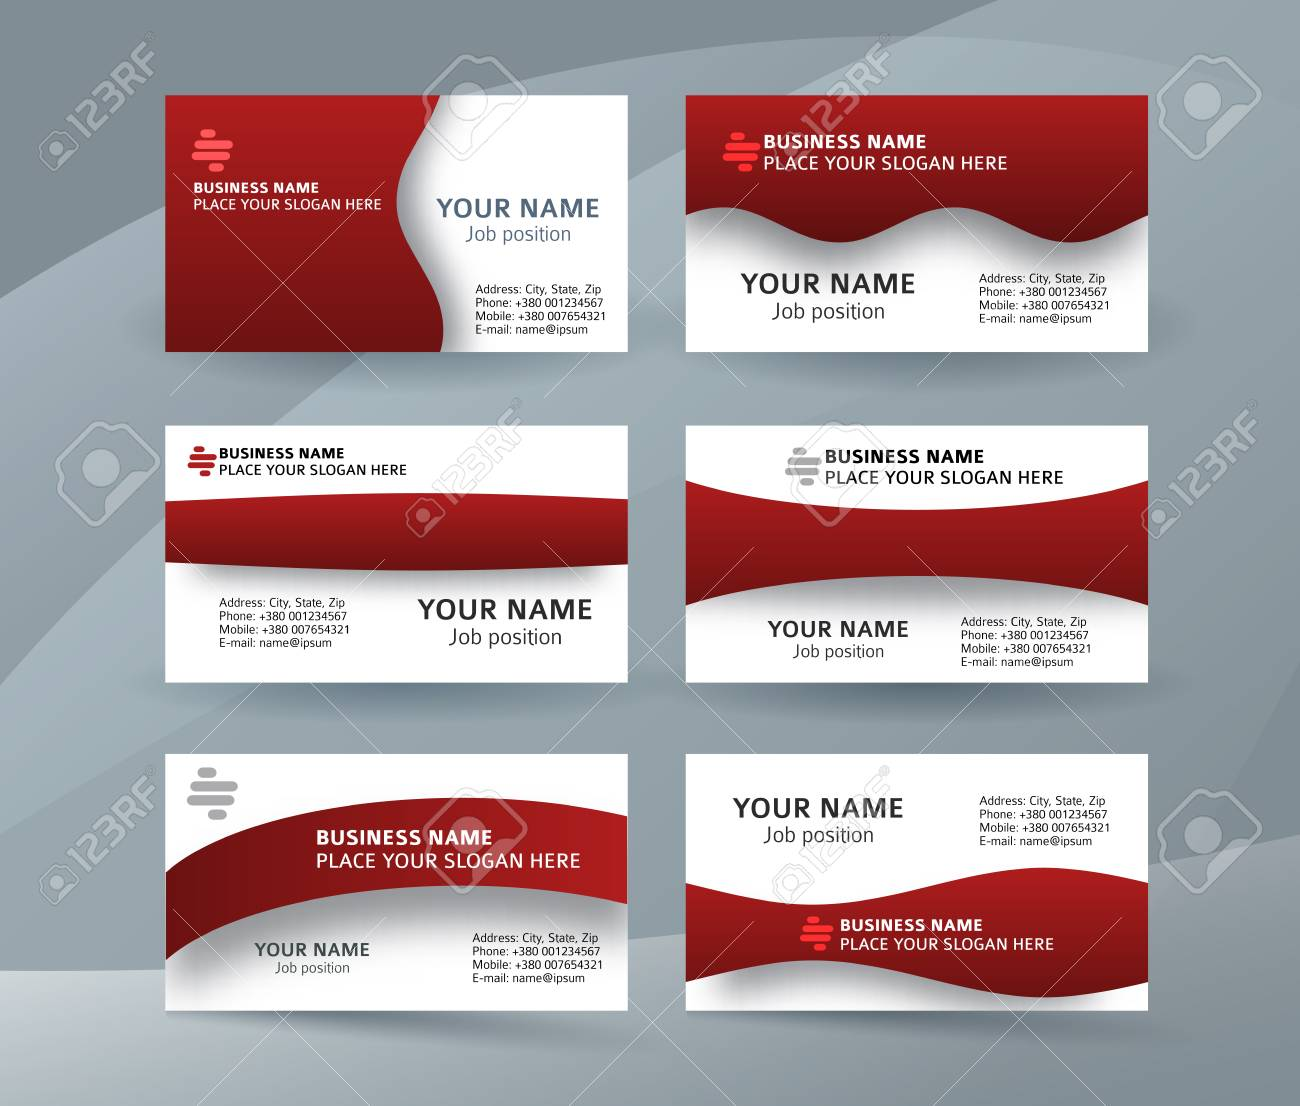 Abstract Professional And Designer Business Card Template Or Royalty Free Cliparts Vectors And Stock Illustration Image 71998888,Roadside Design Guide Table 31